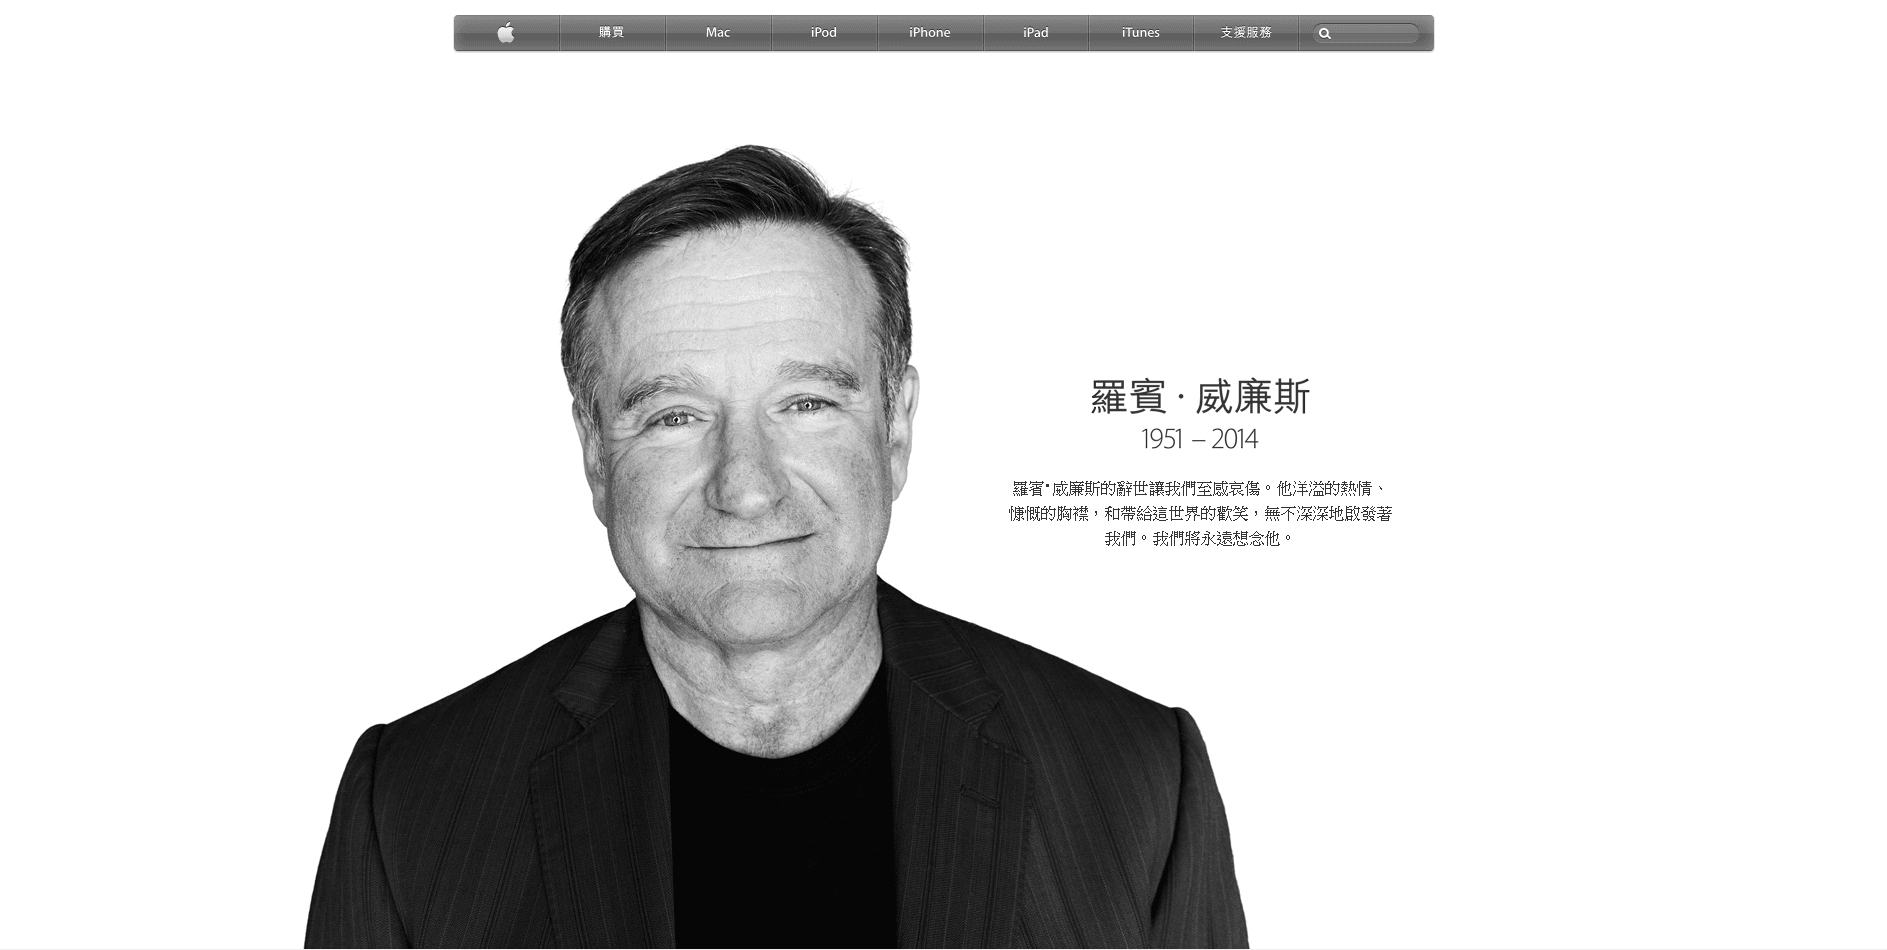 Robin-Williams-Apple-Homepage-for-Memories